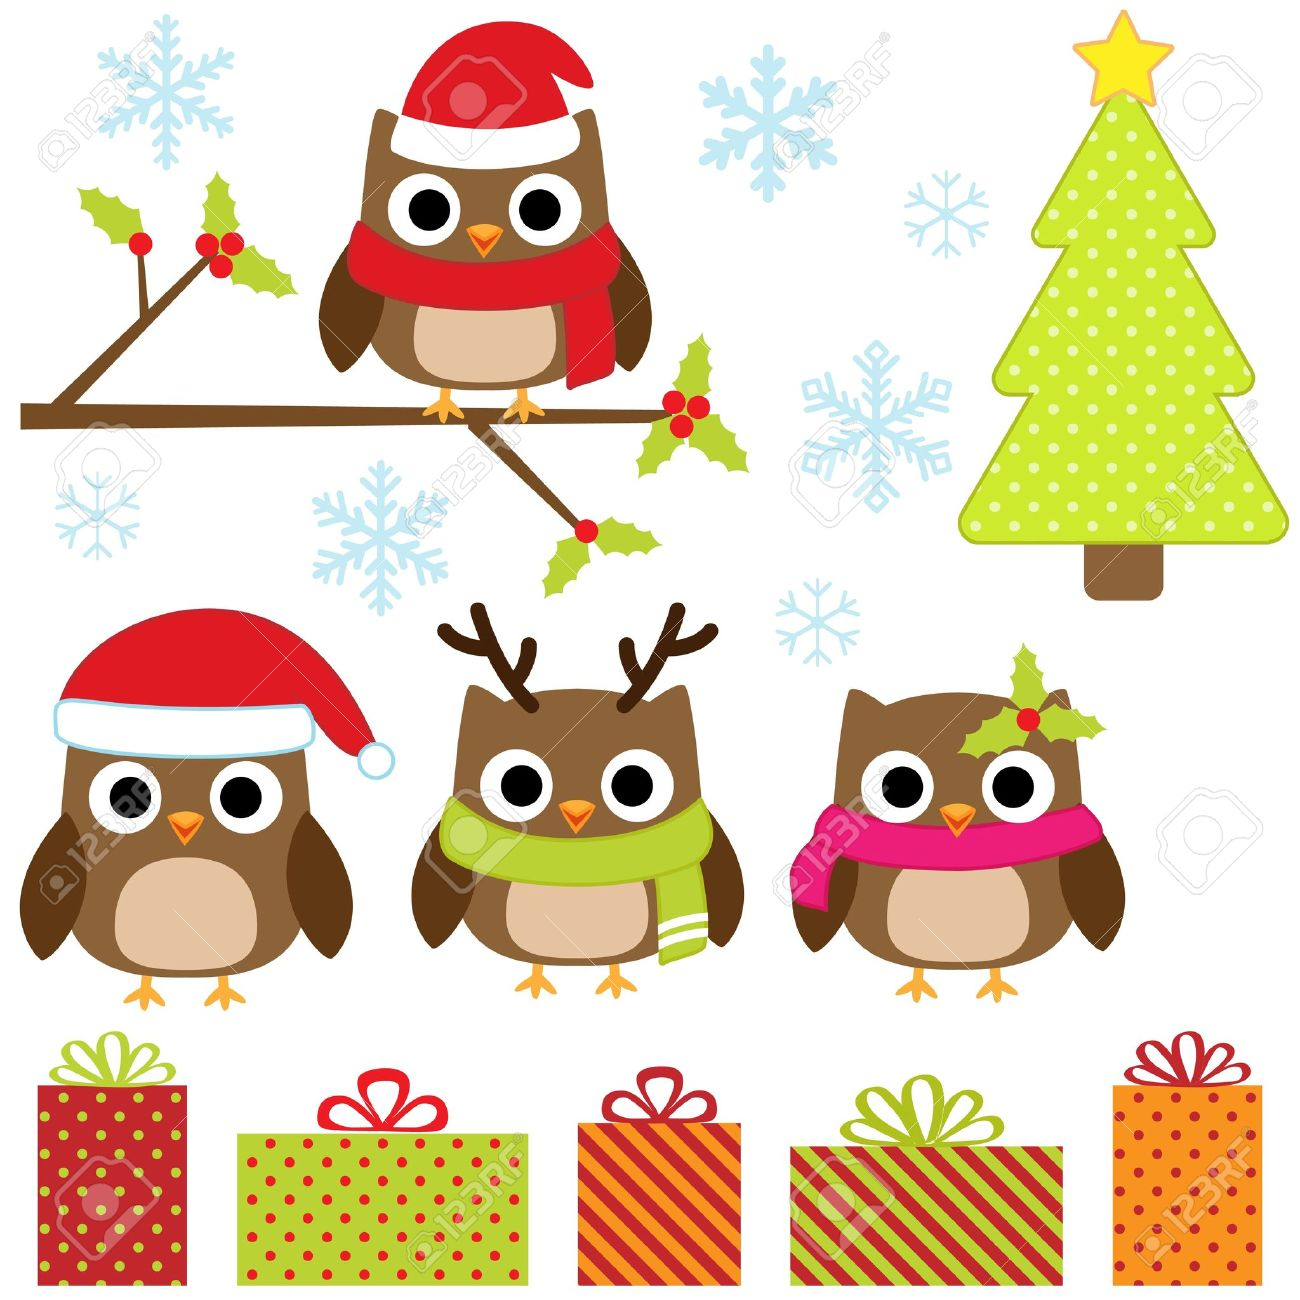 Cute Christmas vector set with funny owls - 16256918